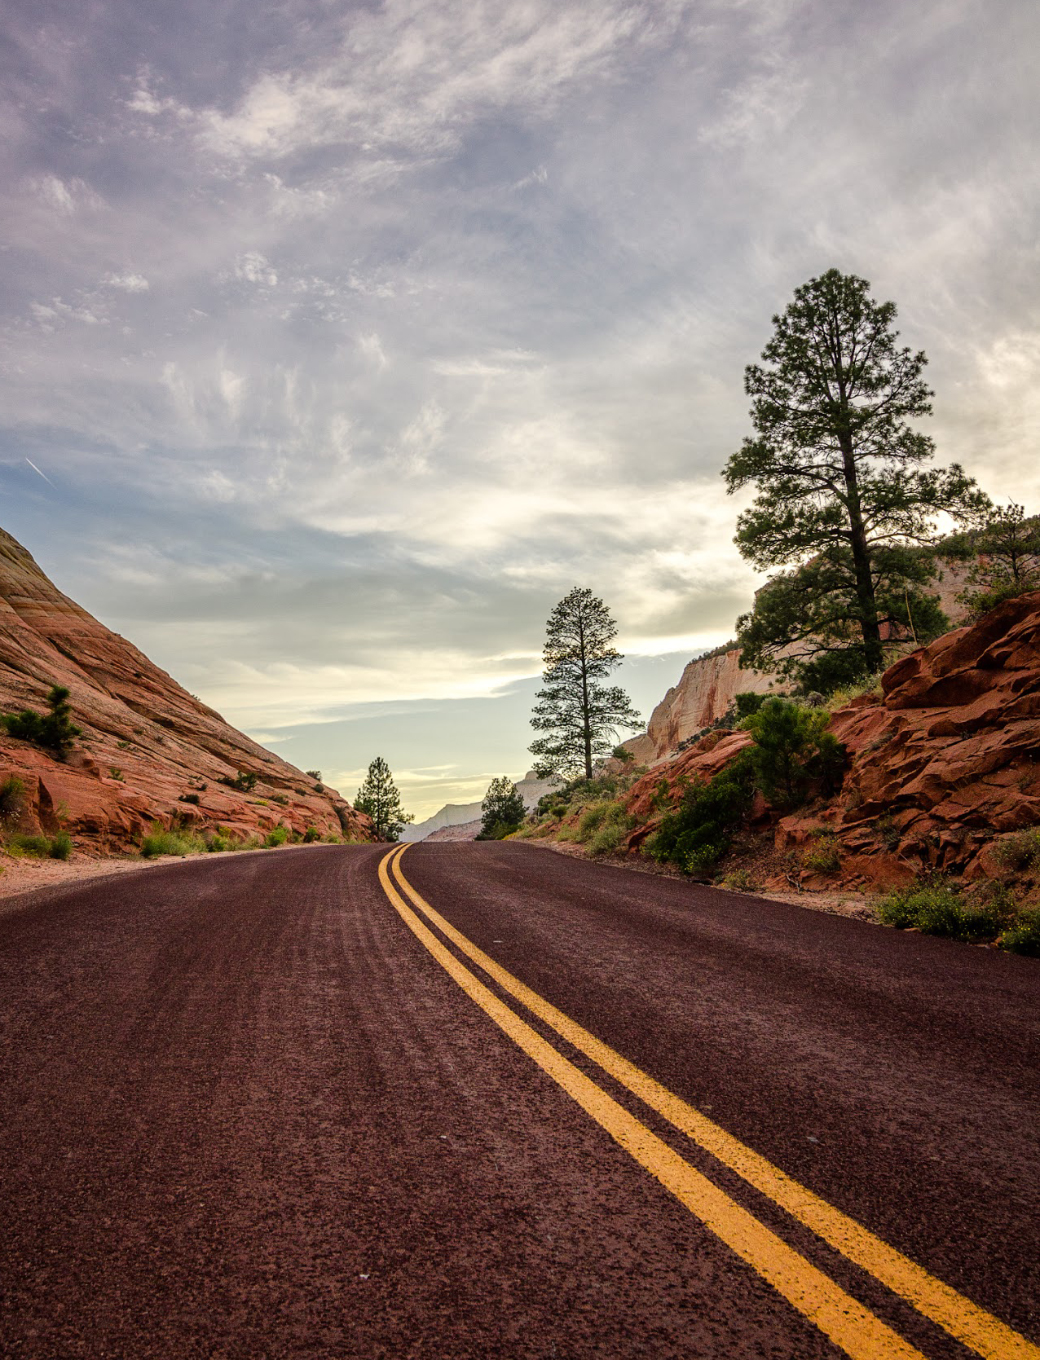 Zion National Park, Utah. Wasim Muklashy Photography